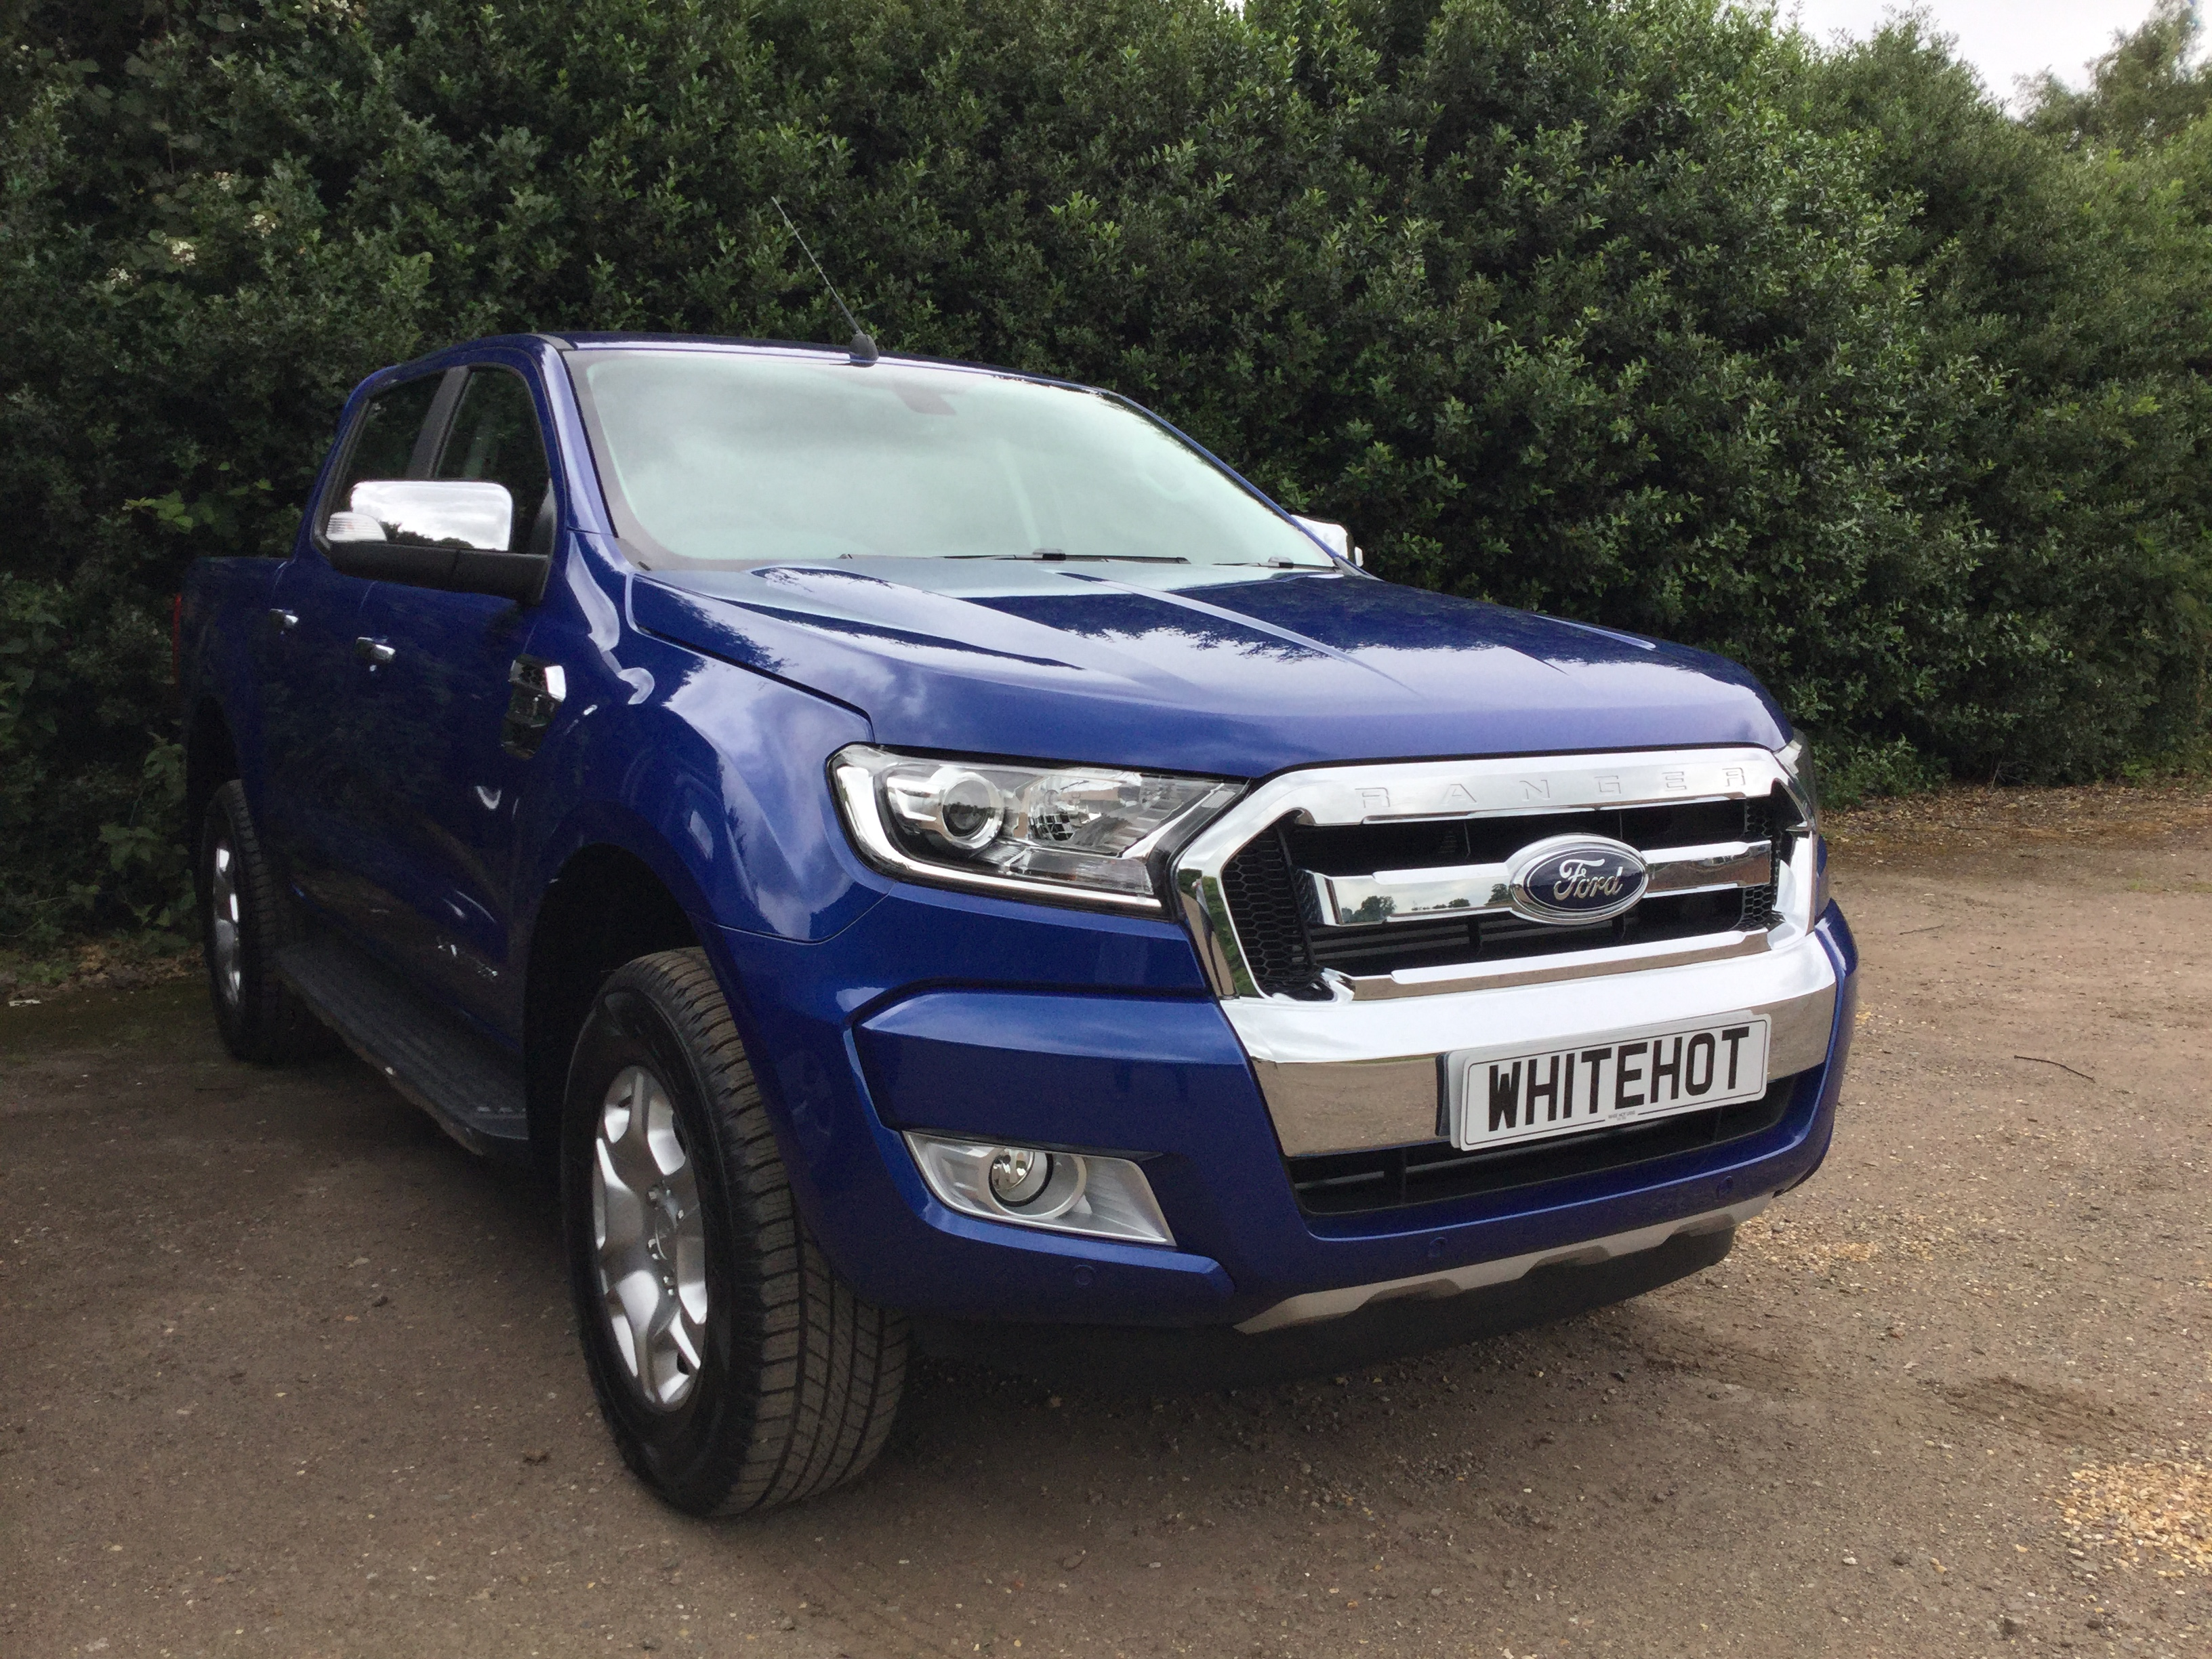 all new ford ranger limited 1 2016 model double cab 3 2 200ps white hot vanswhite hot vans. Black Bedroom Furniture Sets. Home Design Ideas